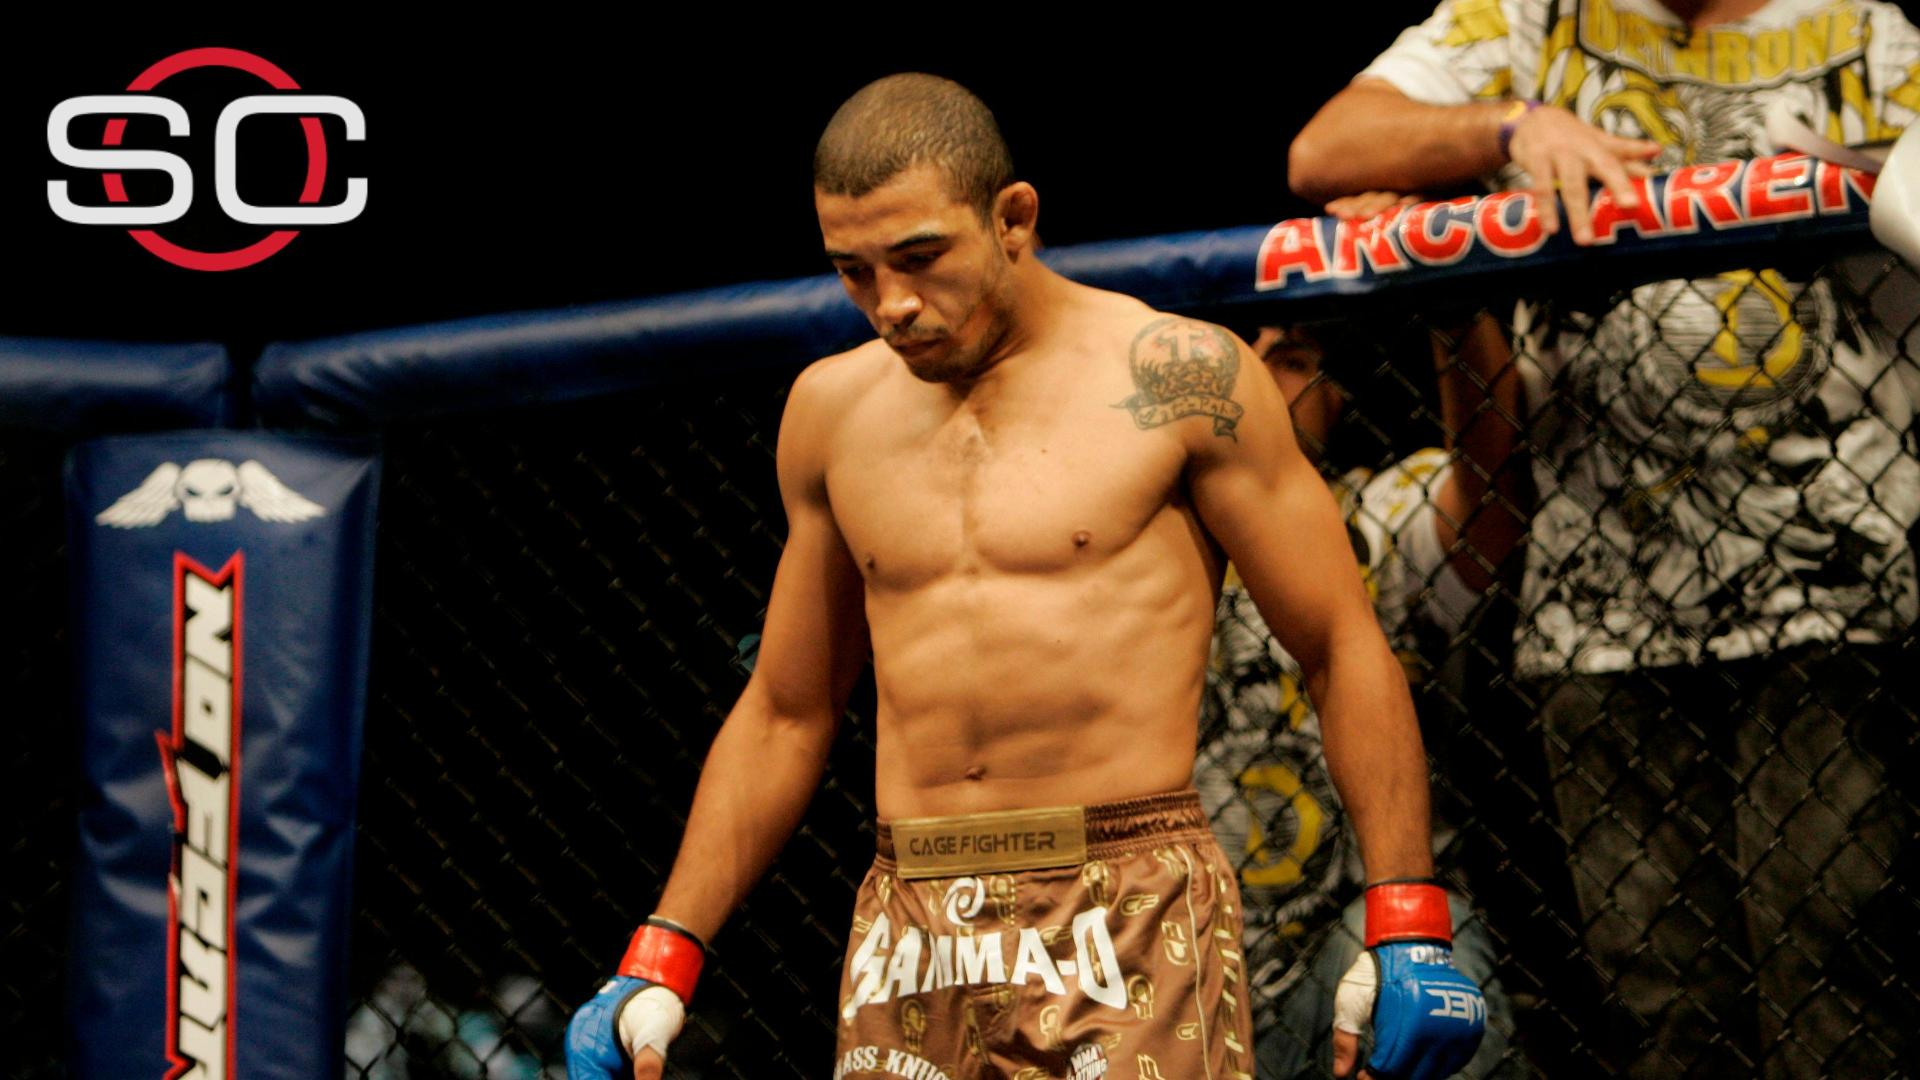 http://a.espncdn.com/media/motion/2015/0625/dm_150625_mma_news_jose_aldo_bone_bruise945/dm_150625_mma_news_jose_aldo_bone_bruise945.jpg